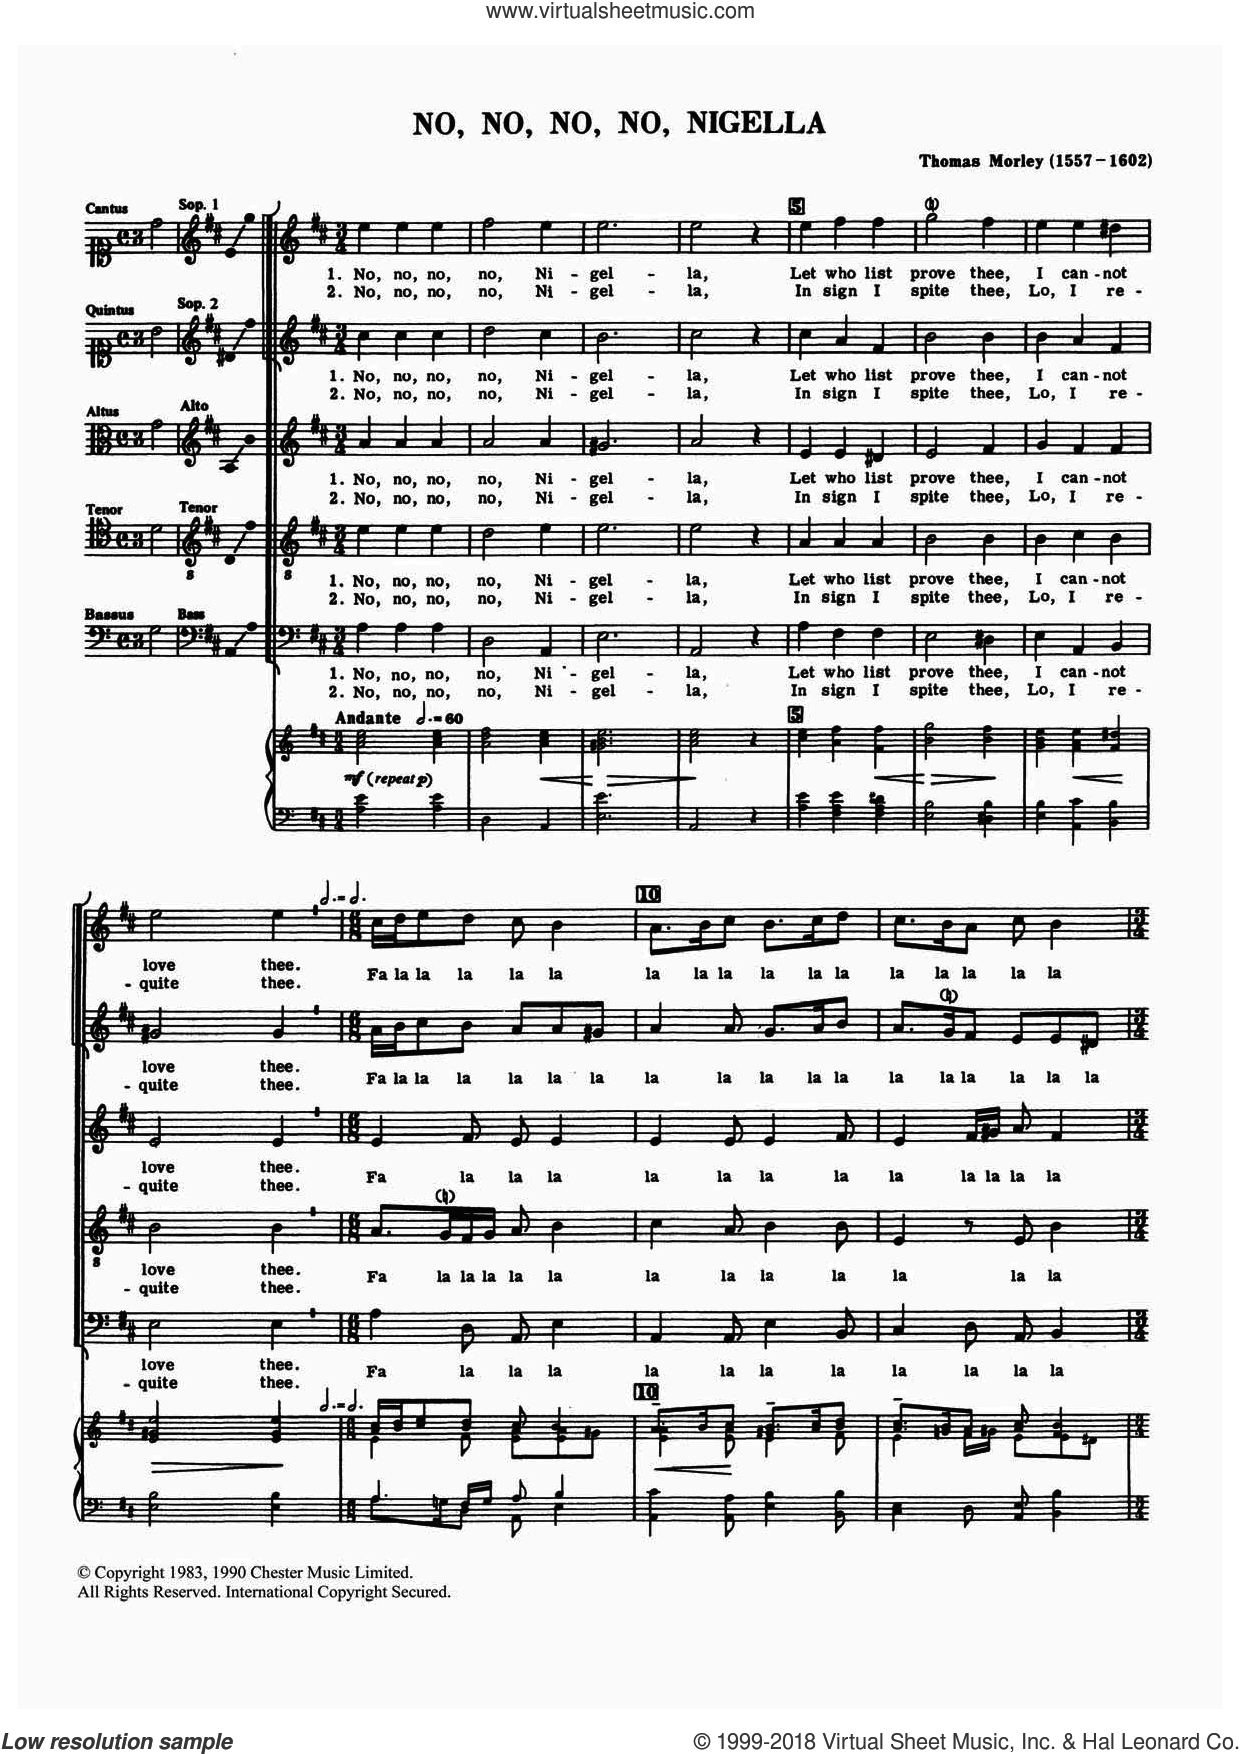 No, No, No, No, Nigella sheet music for choir by Thomas Morley and Anthony Petti, classical score, intermediate skill level